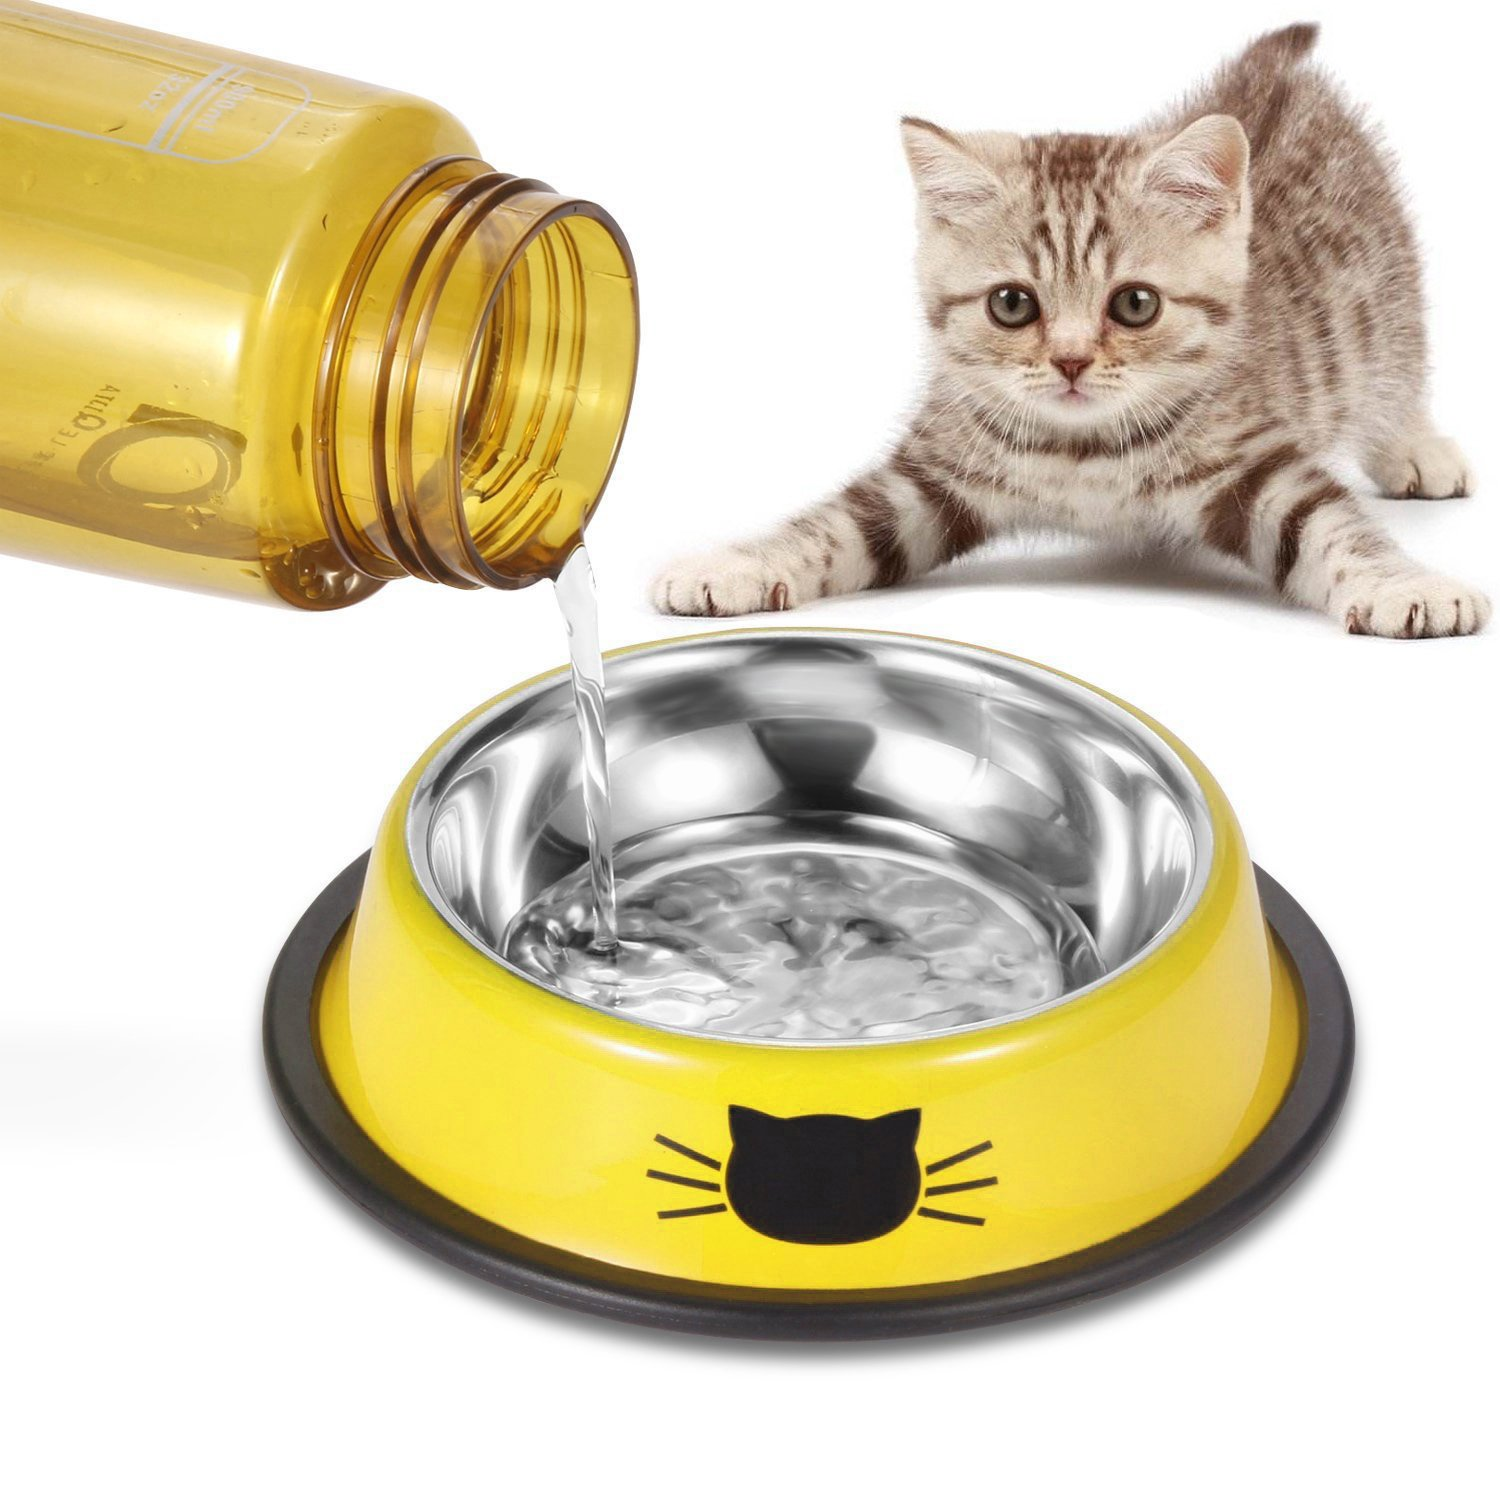 Comsmart Stainless Steel Pet Cat Bowl Kitten Puppy Dish Bowl with Cute Cats Painted Non-Skid for Small Dogs Cats Animals (Set of 2) (Yellow/Yellow) by Comsmart (Image #7)